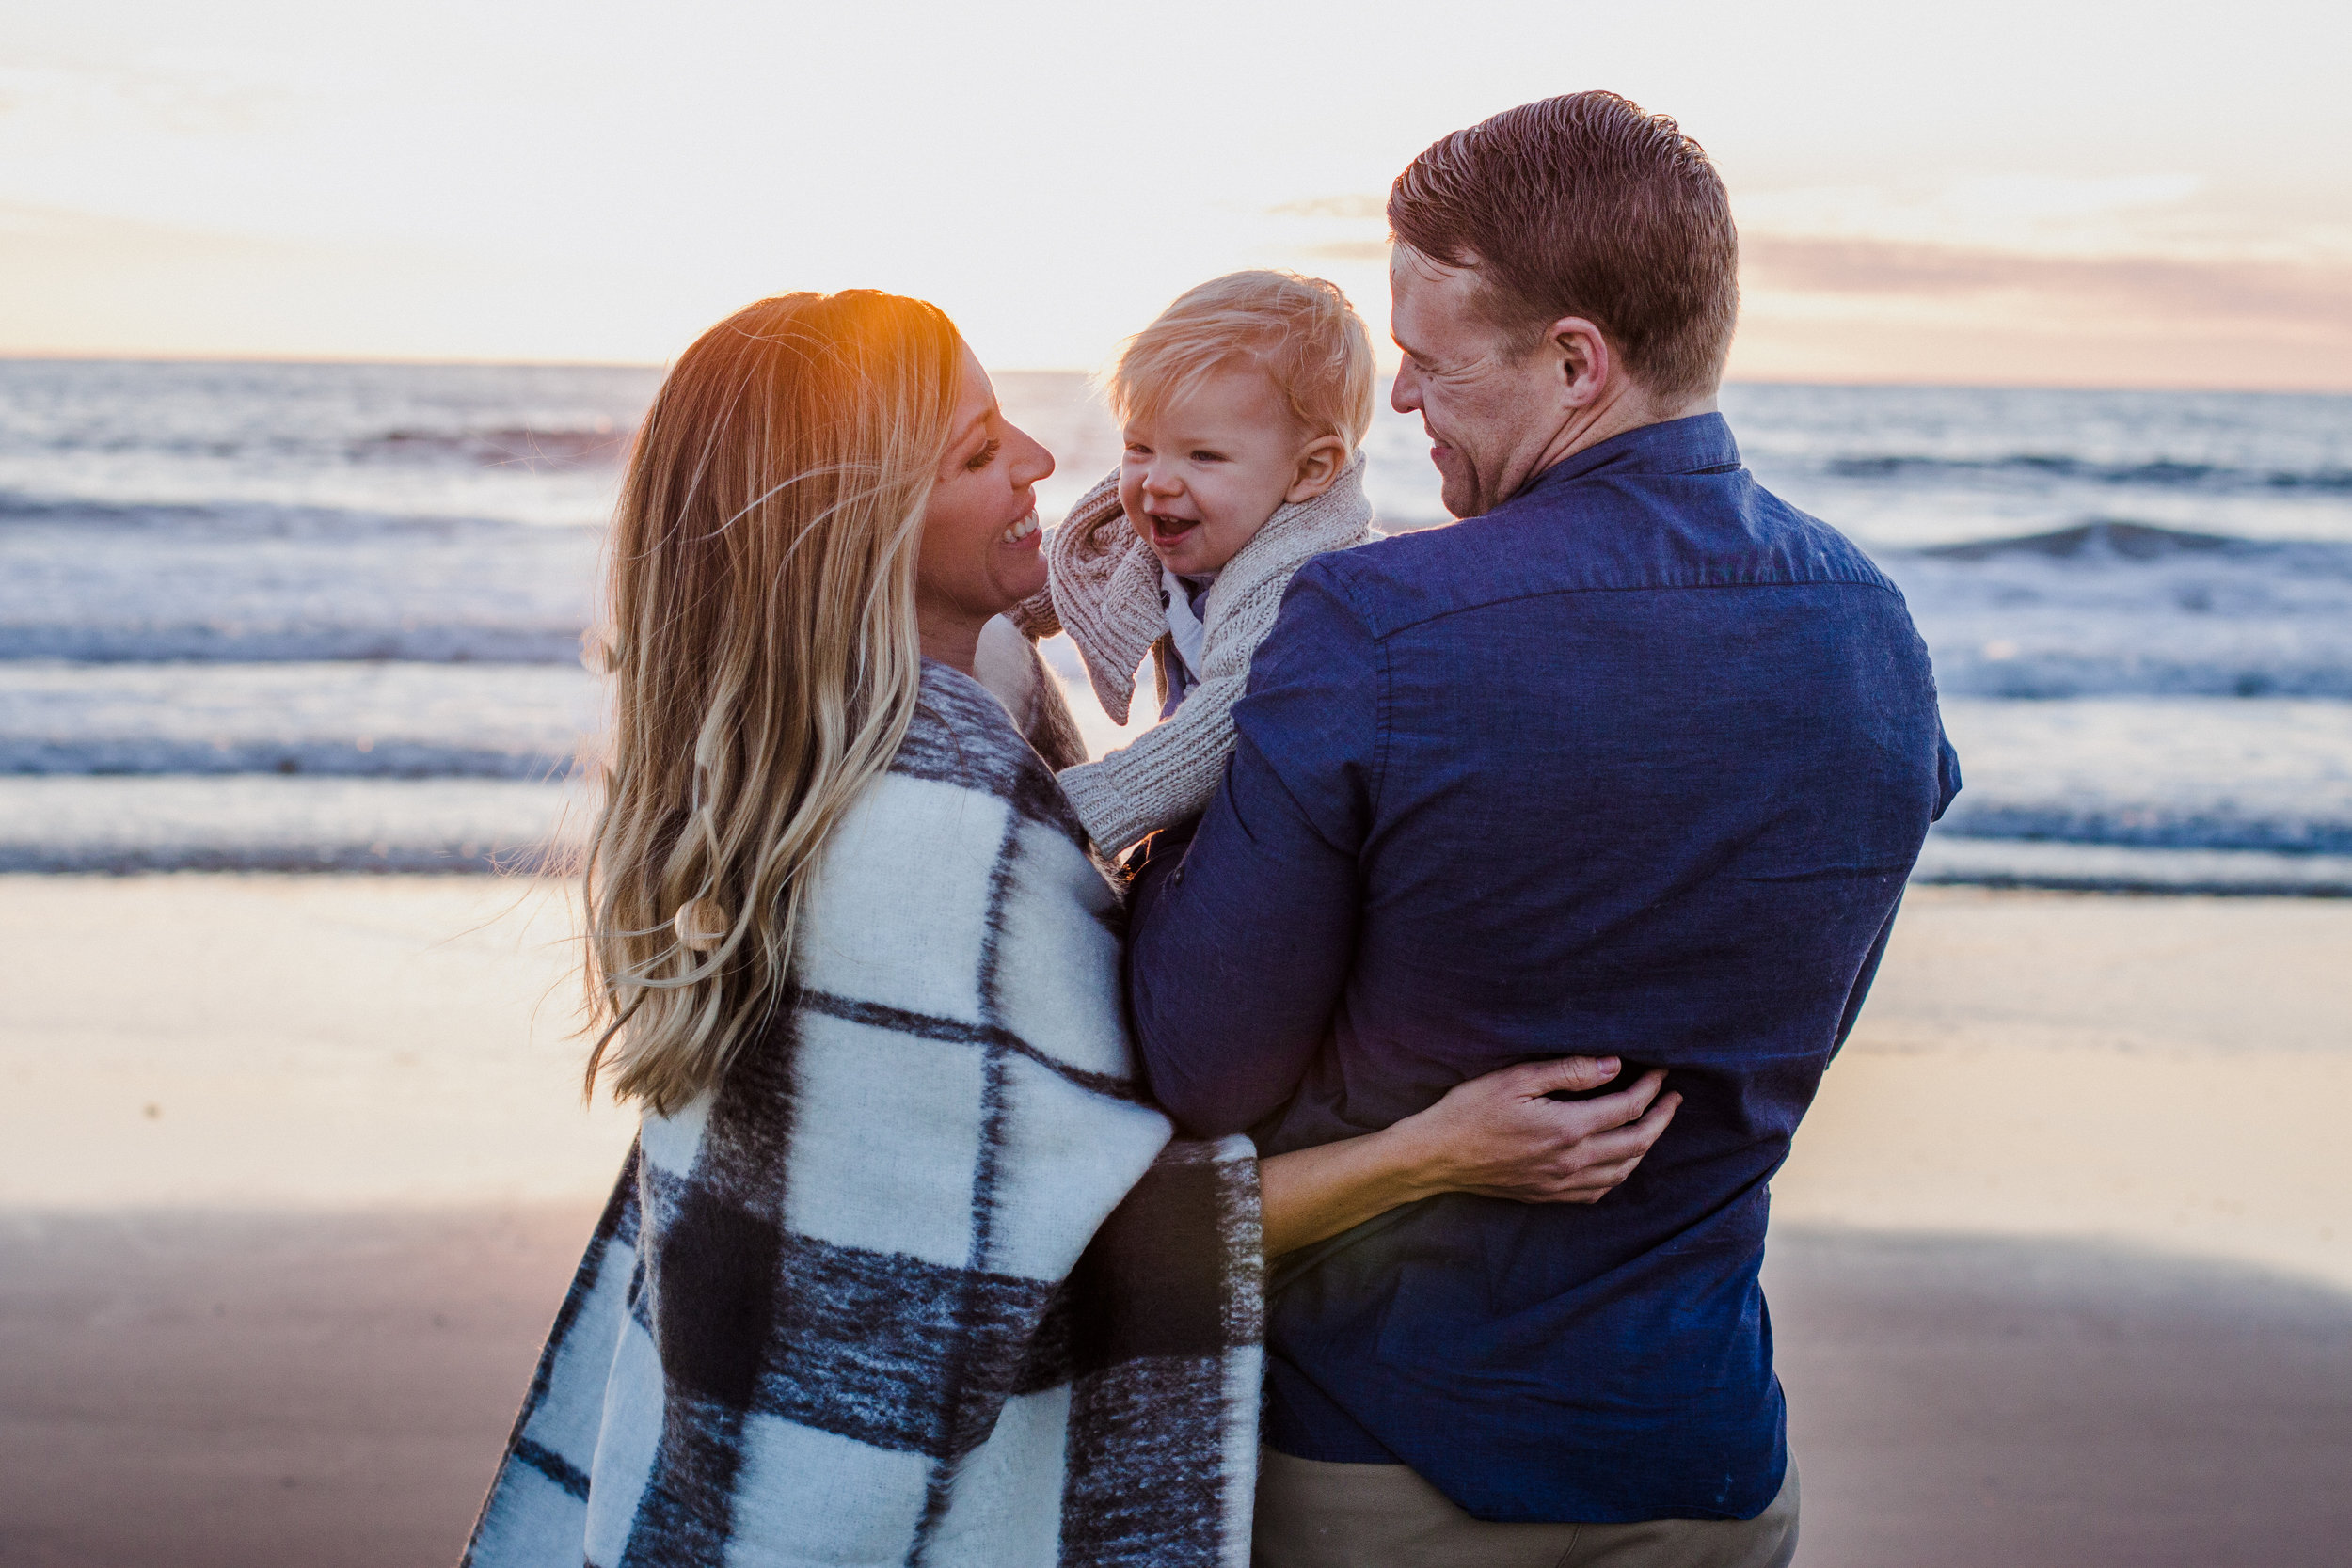 This gorgeous family likes to spend sunsets with their son on the beach. It's a favorite pass-time for them.